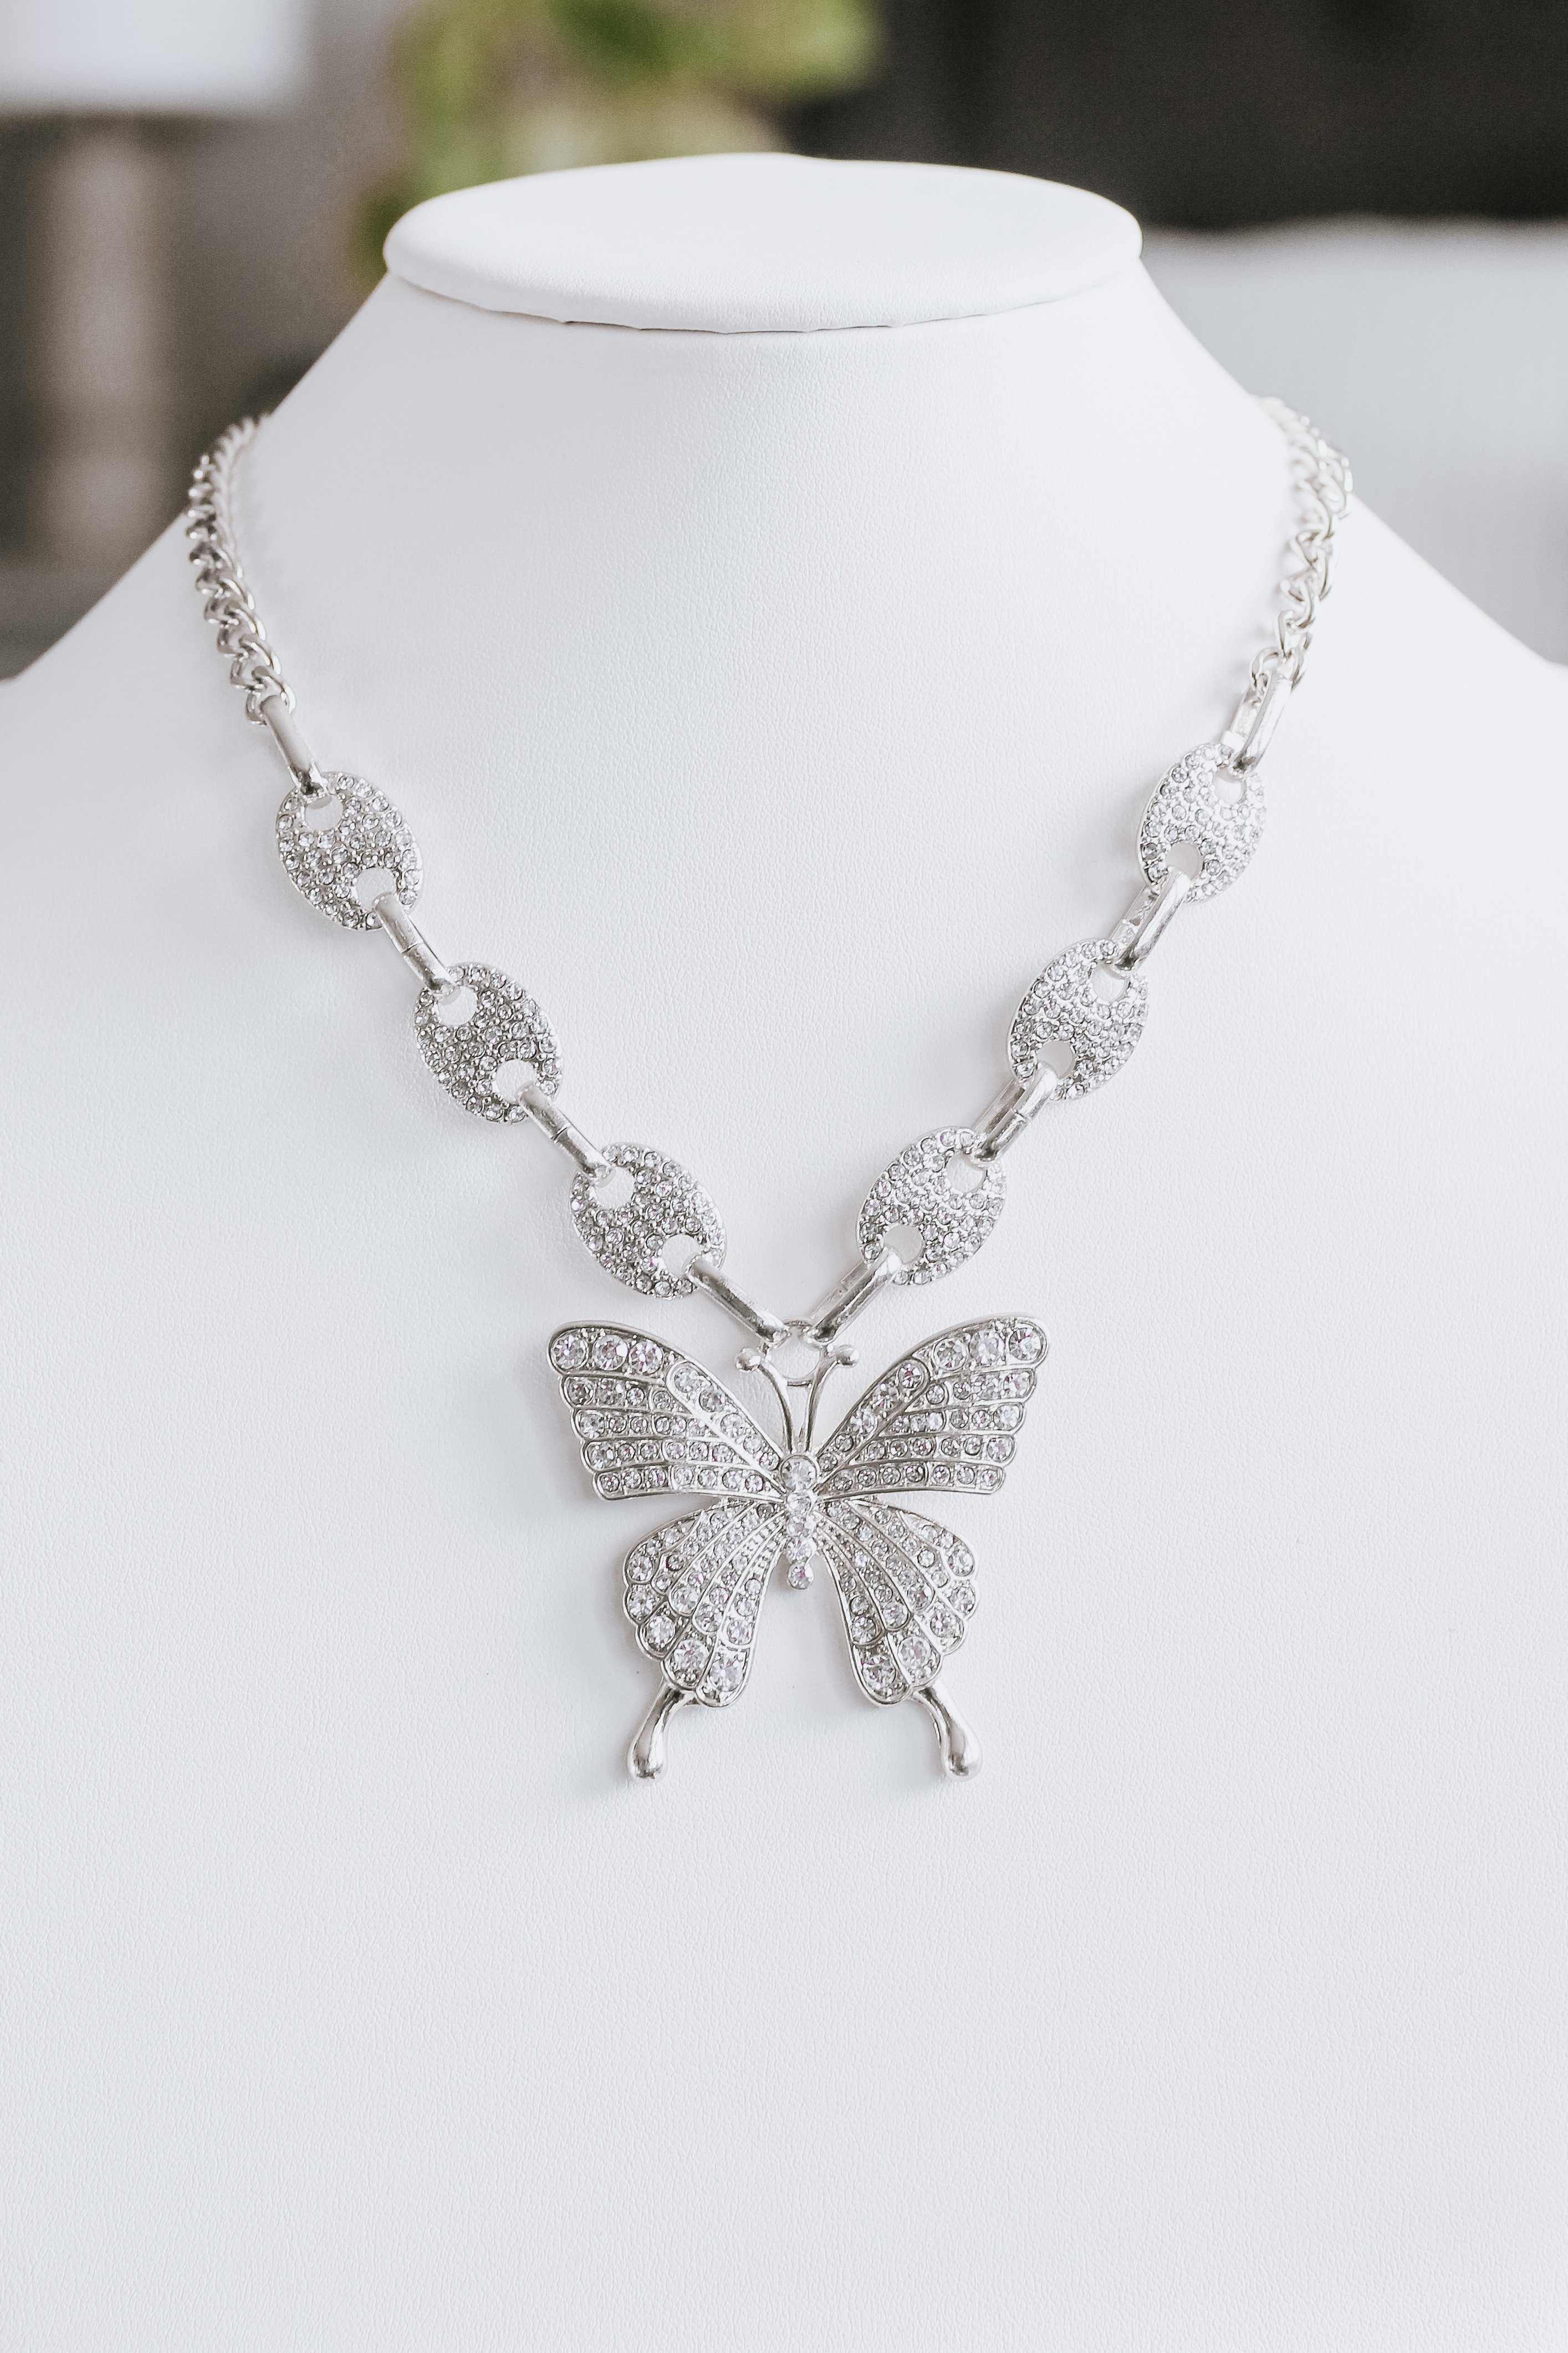 Image of Rhinestone Oval Link Chain with Butterfly Pendant Necklace